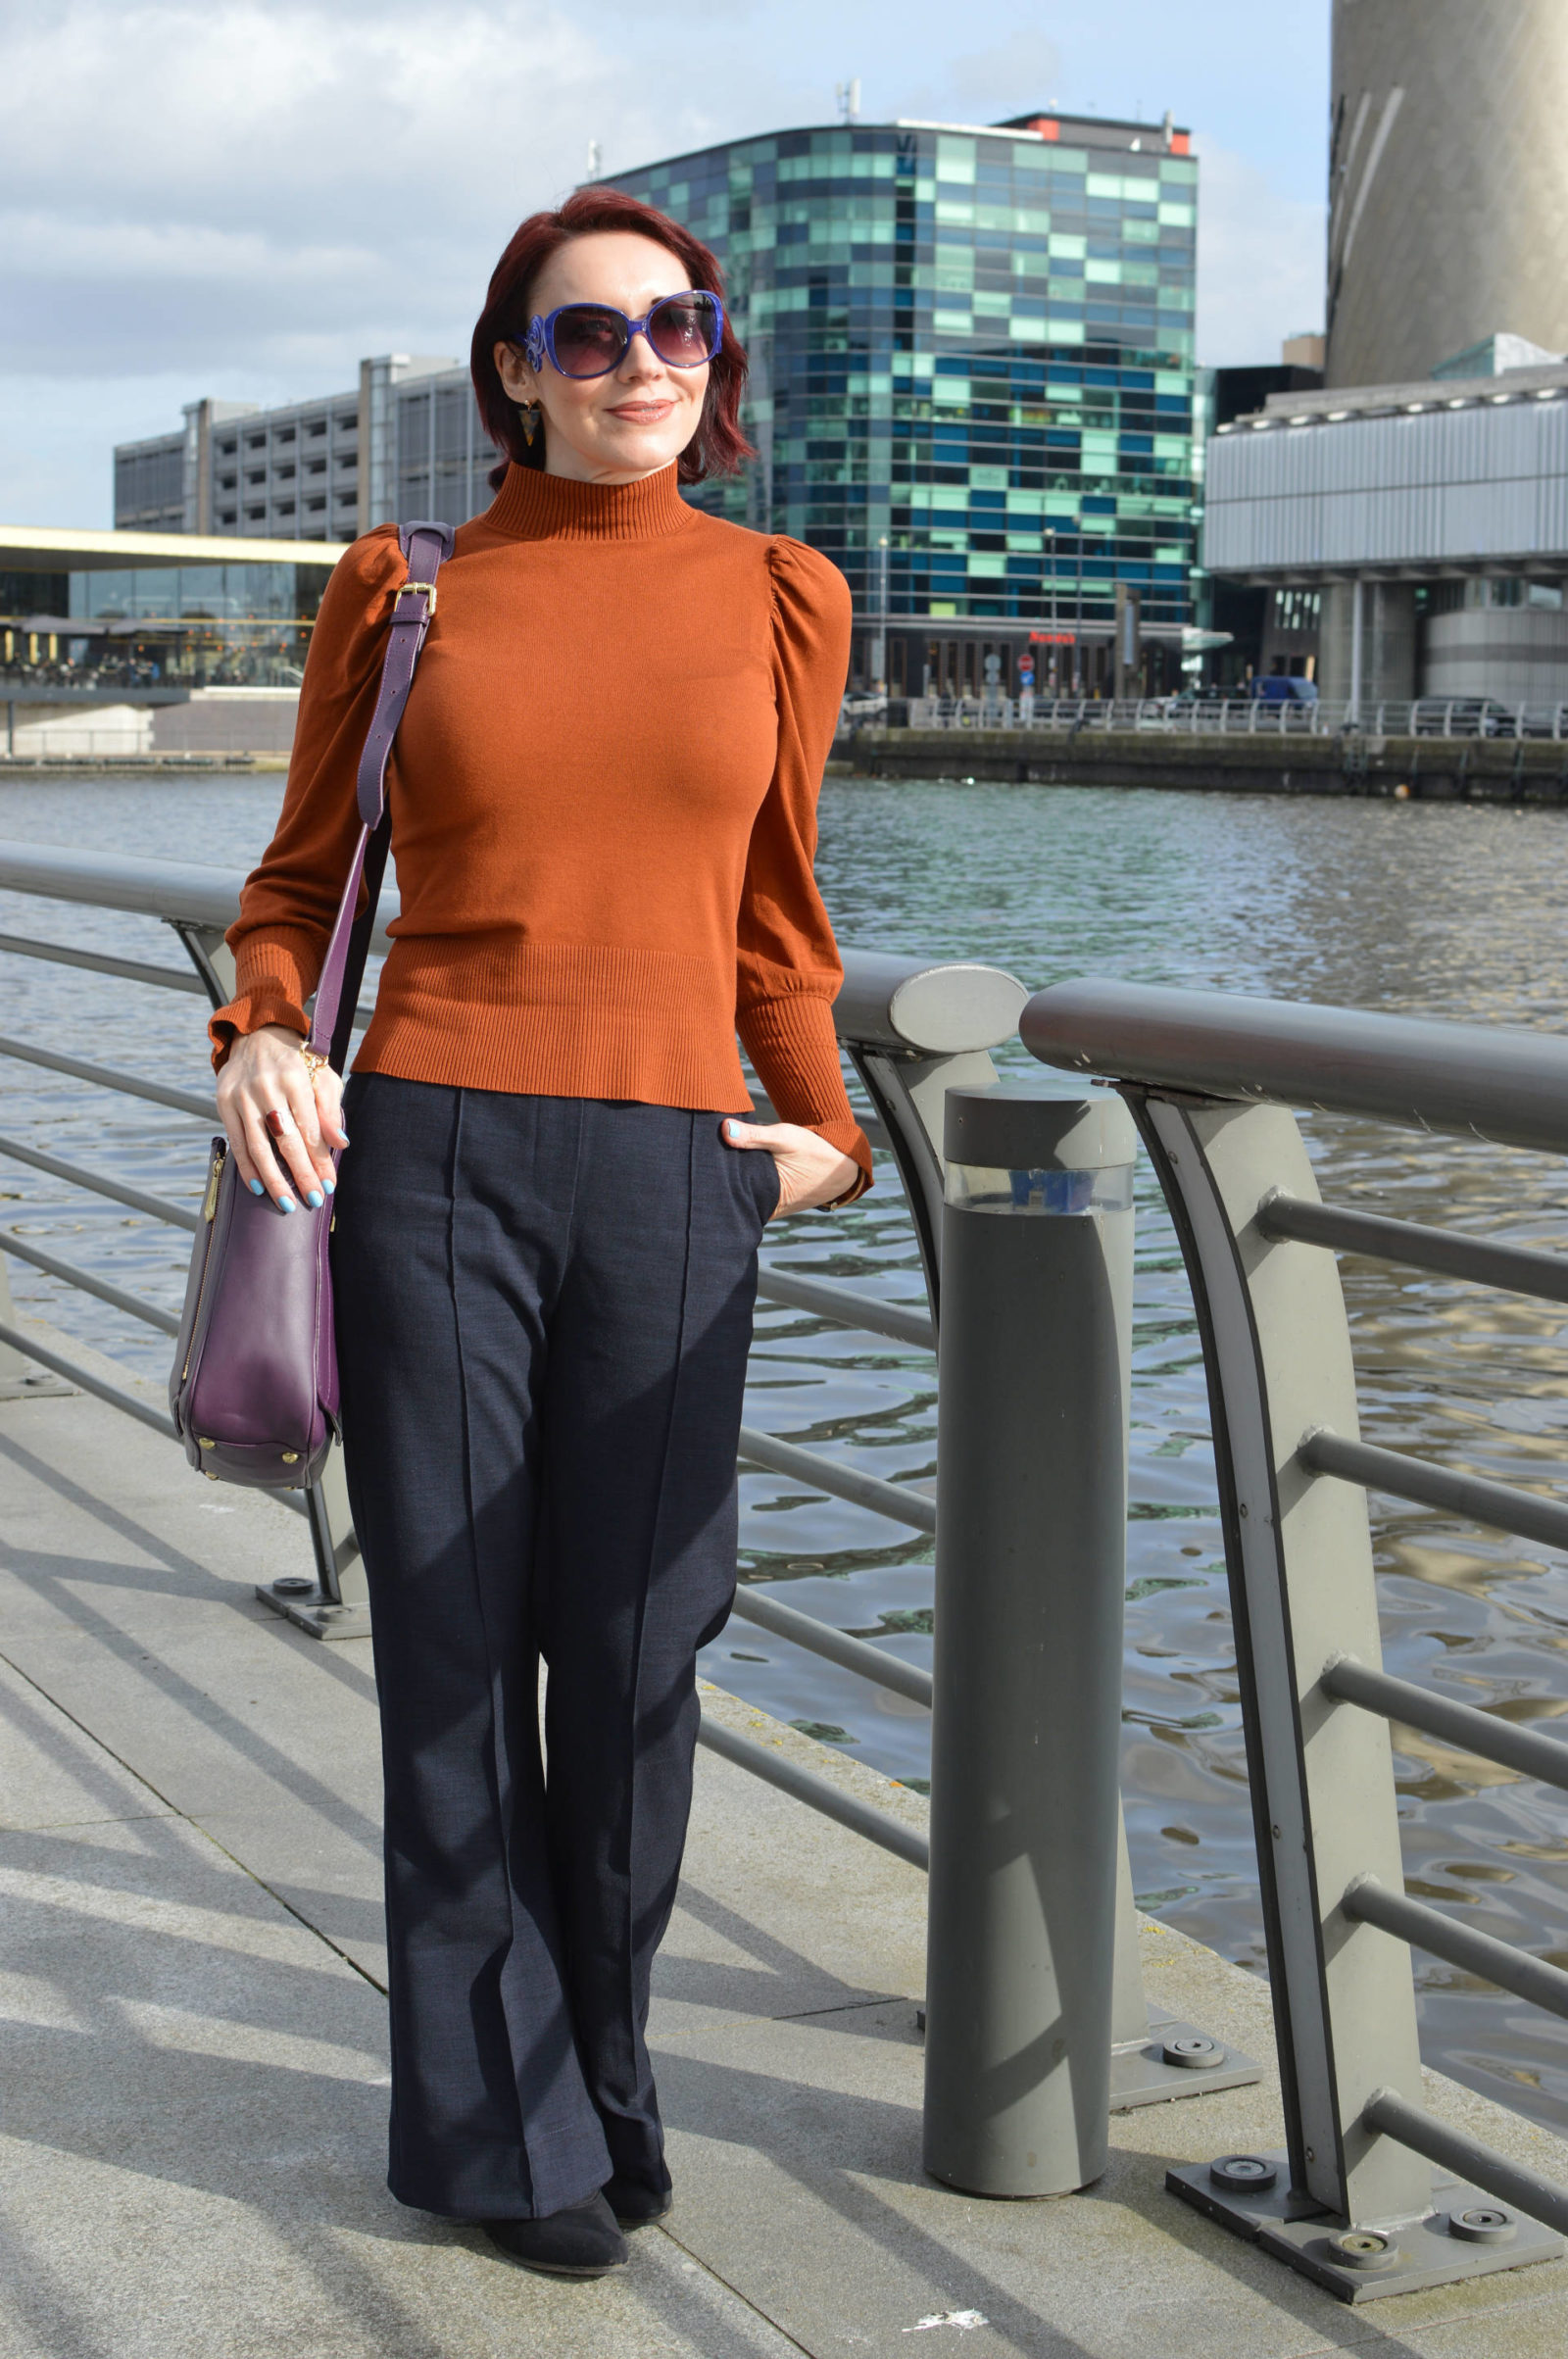 Brown and navy: a classic workwear outfit